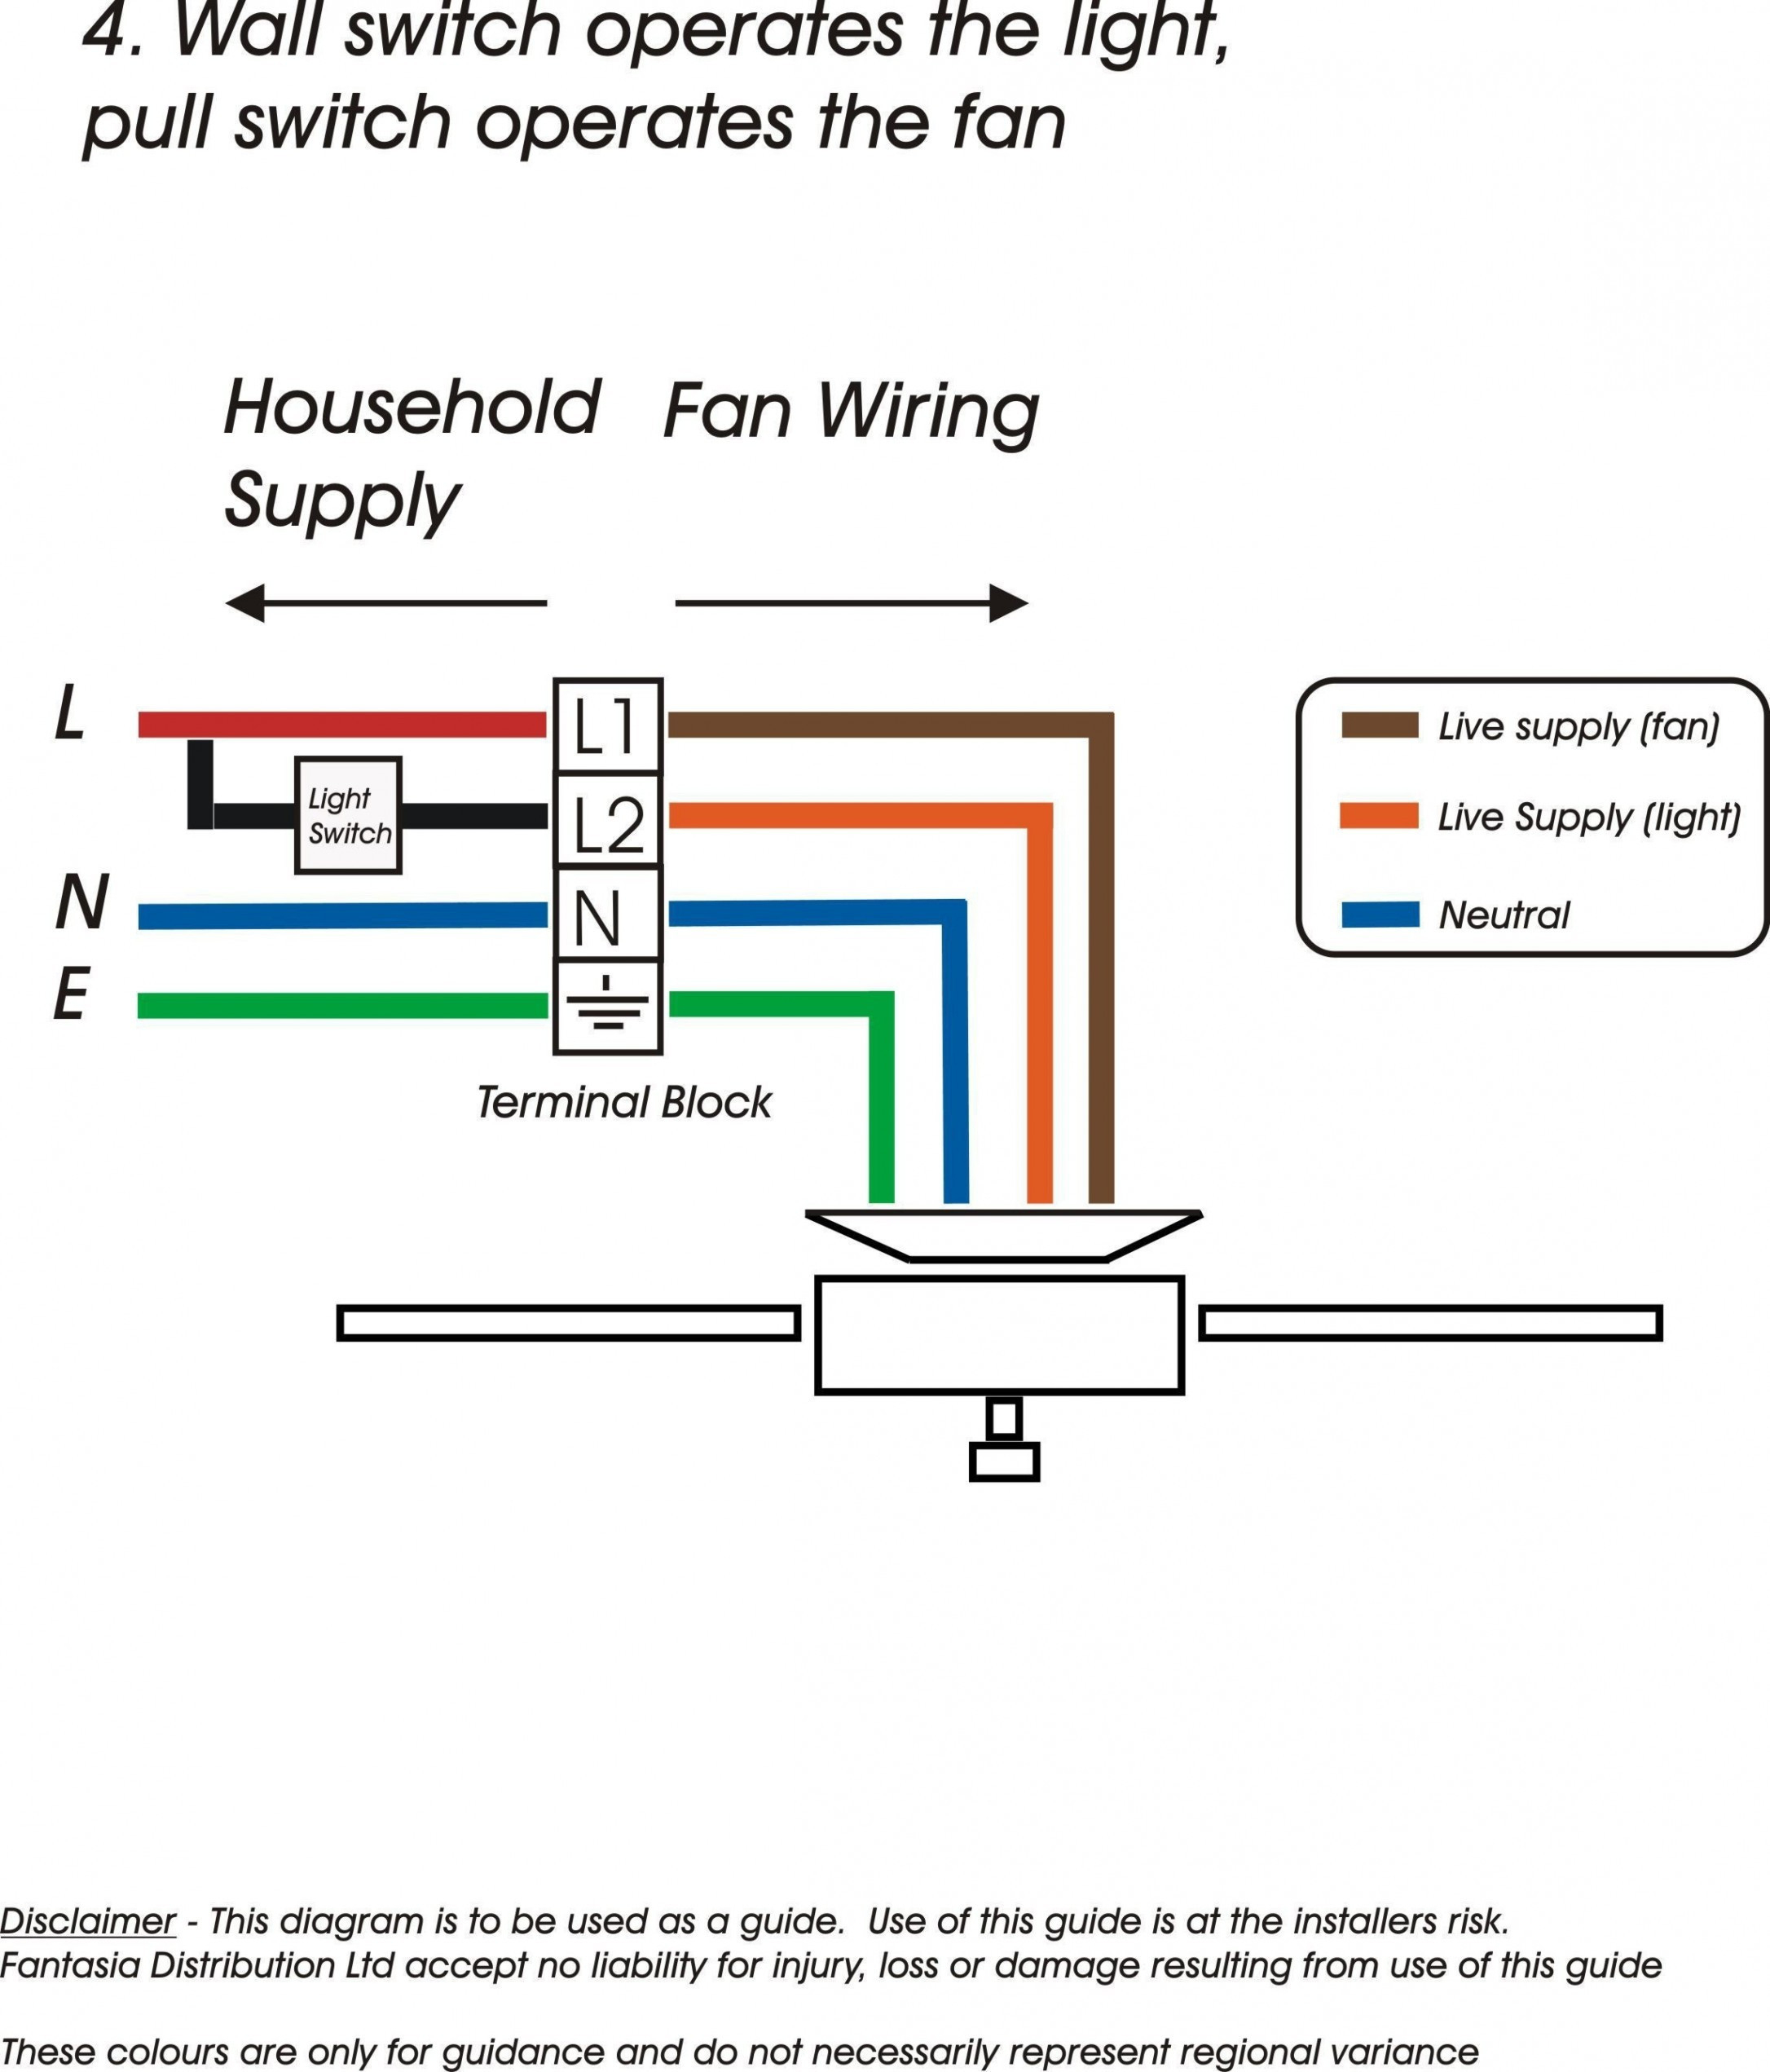 Pir Motion Sensor Light Wiring Diagram New Wiring Diagram For A Pir - Motion Sensor Light Wiring Diagram